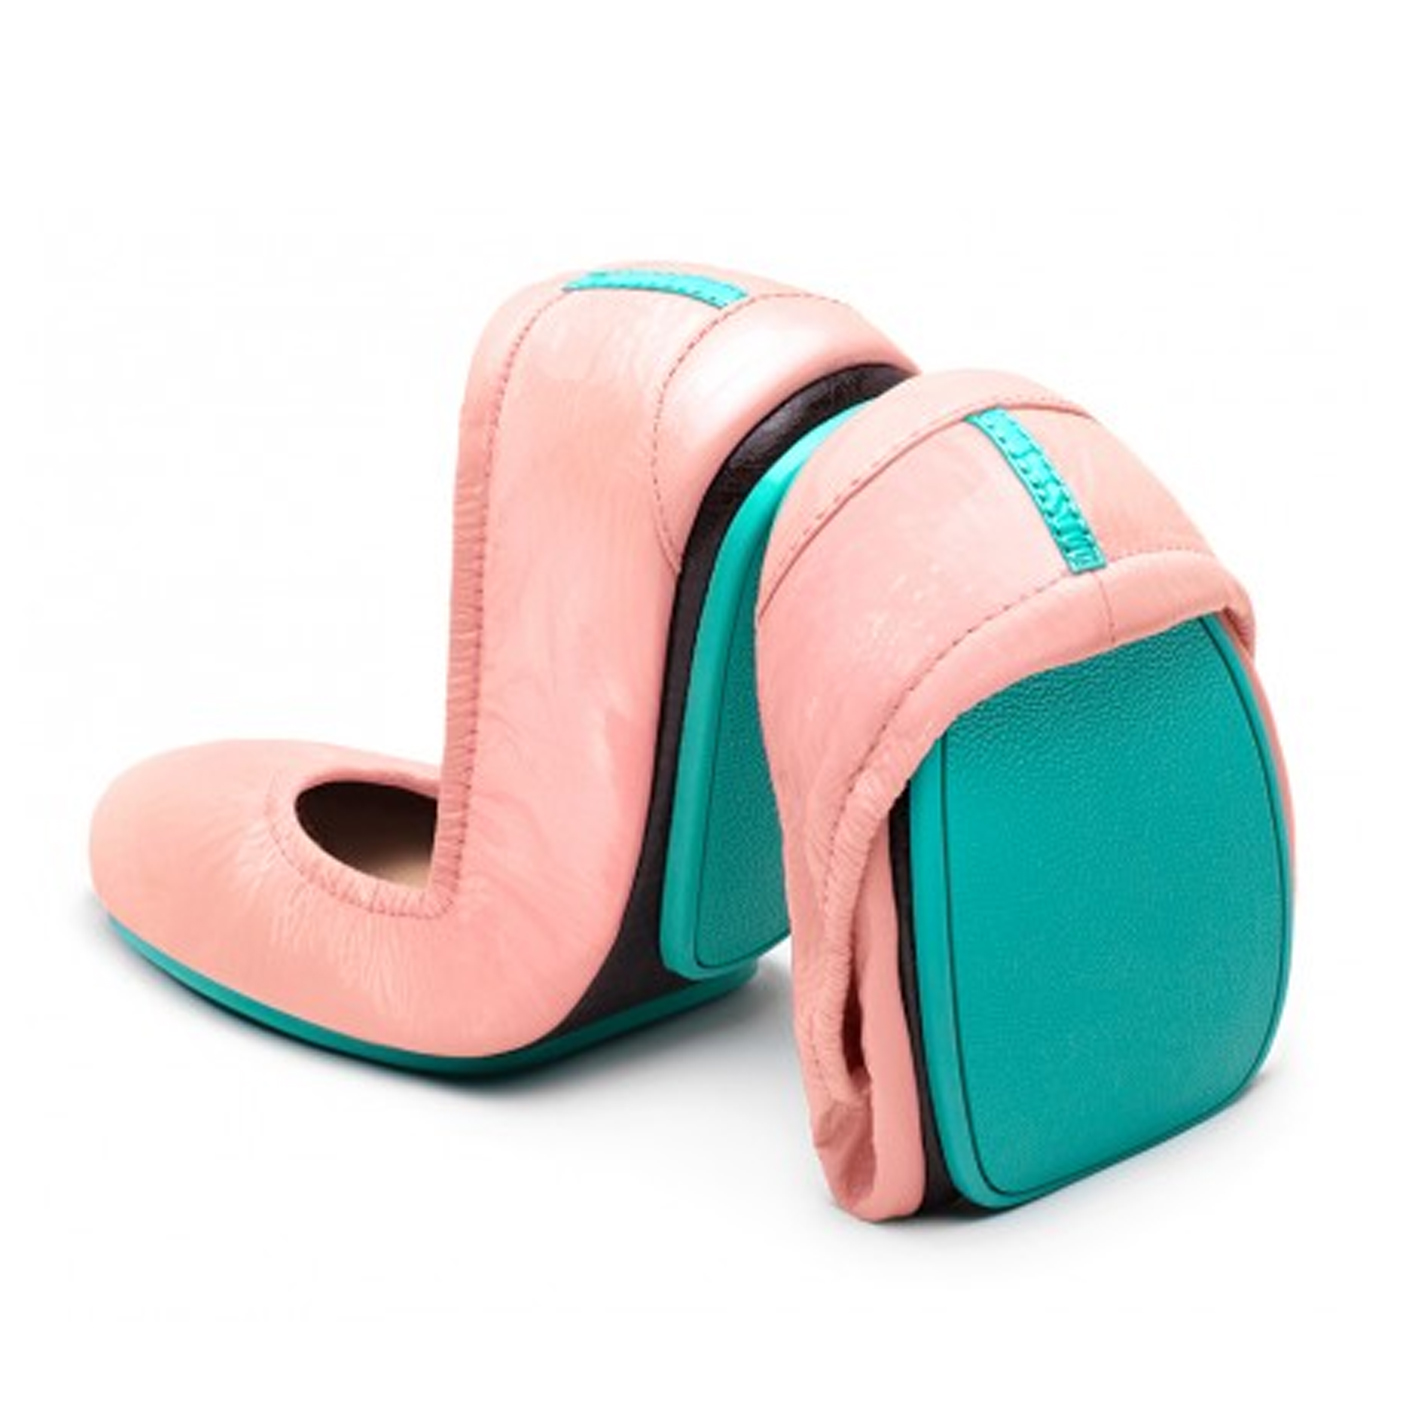 Tieks Ballet Flat Cotton Candy - Minimalist shoes that look good post by Mama Natural